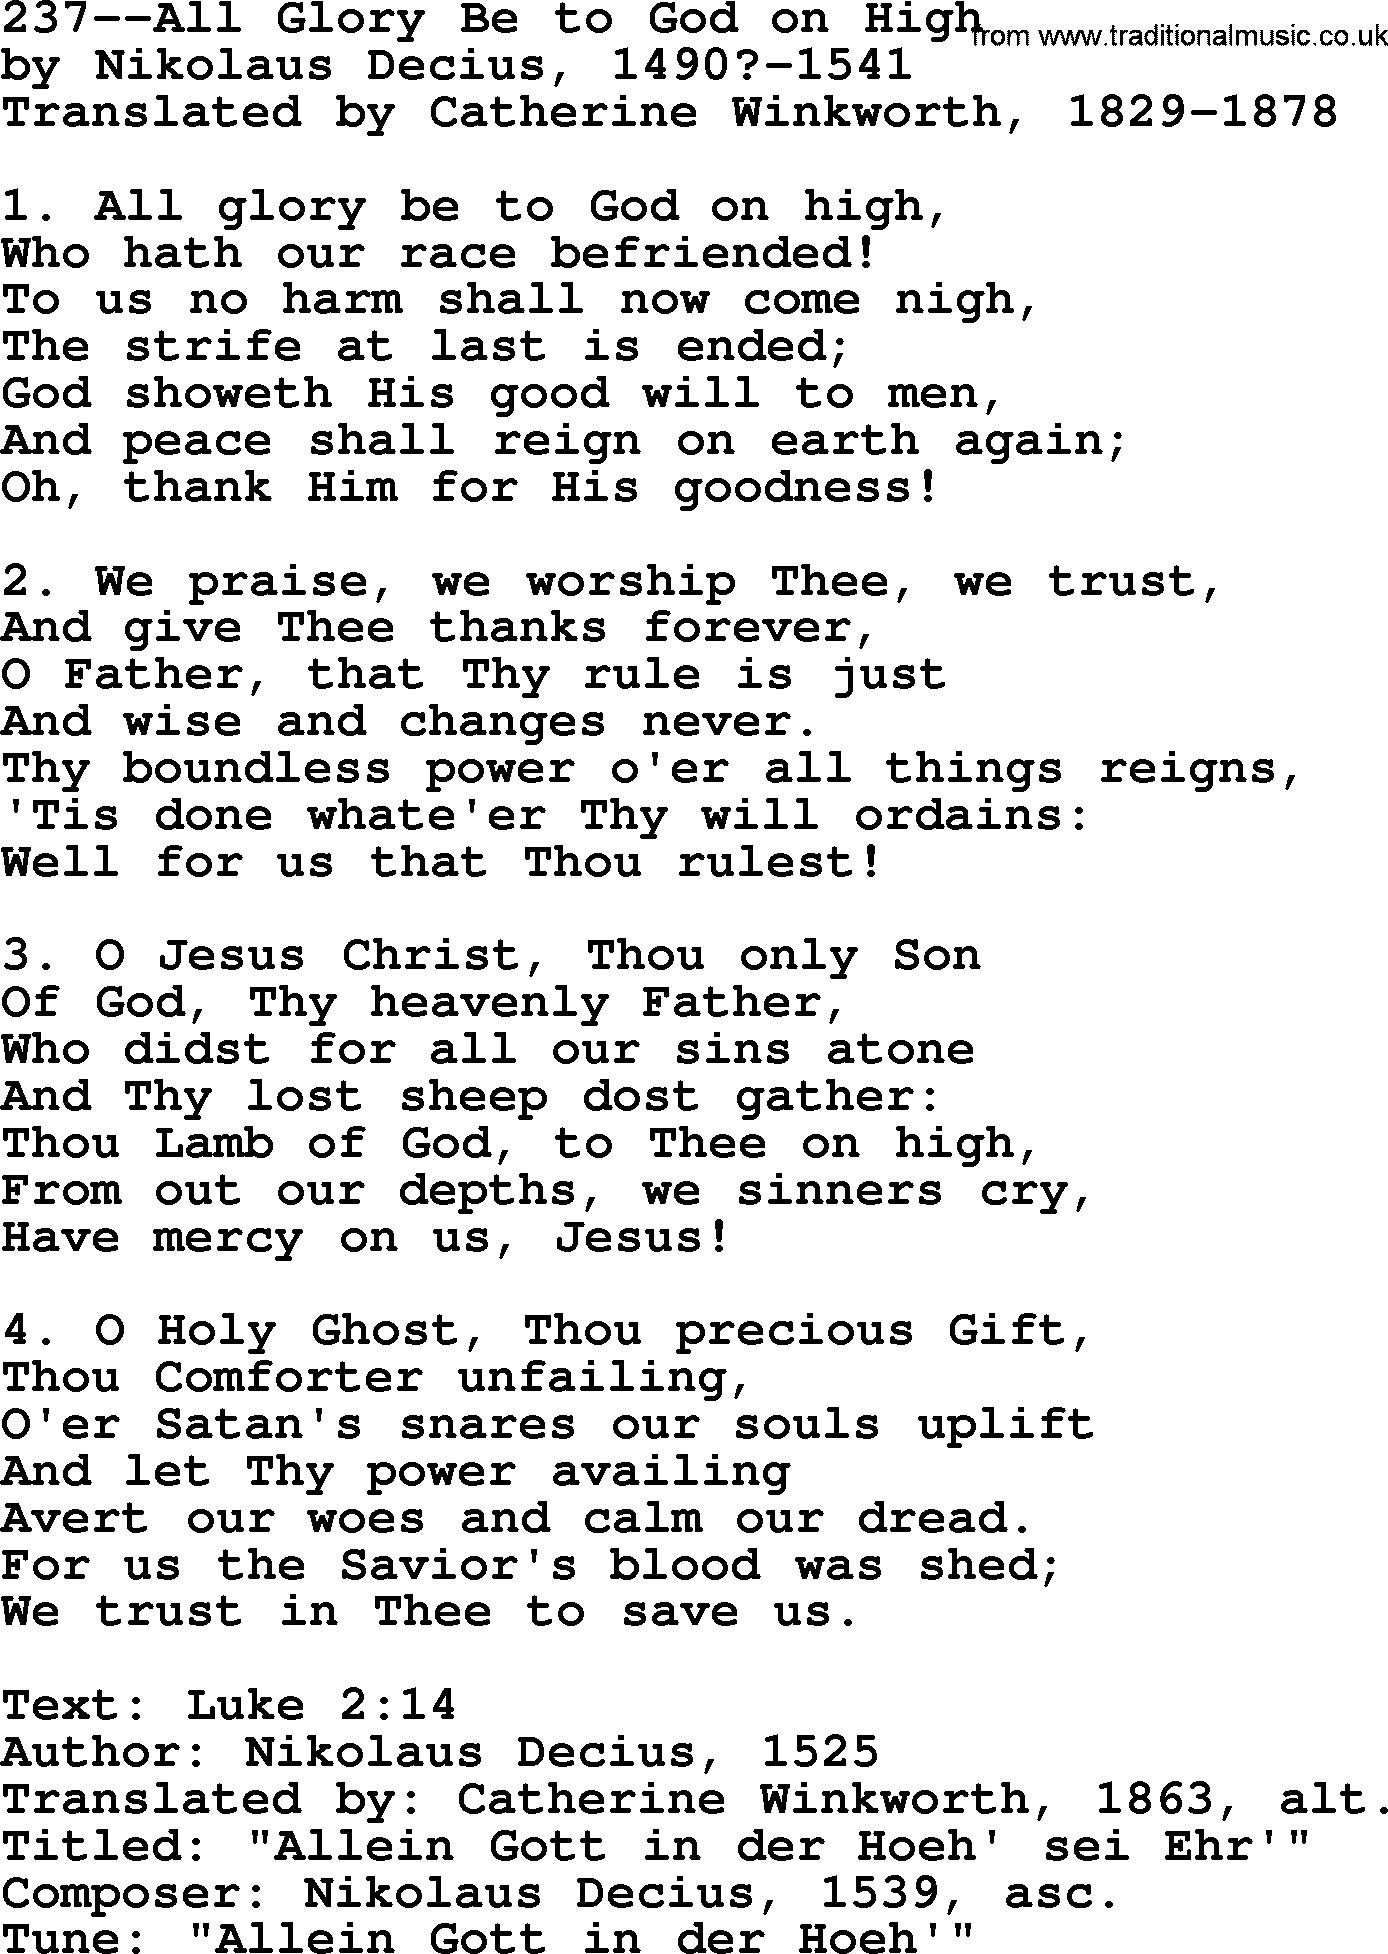 Lutheran Hymns Song237 All Glory Be To God On High Lyrics And Pdf